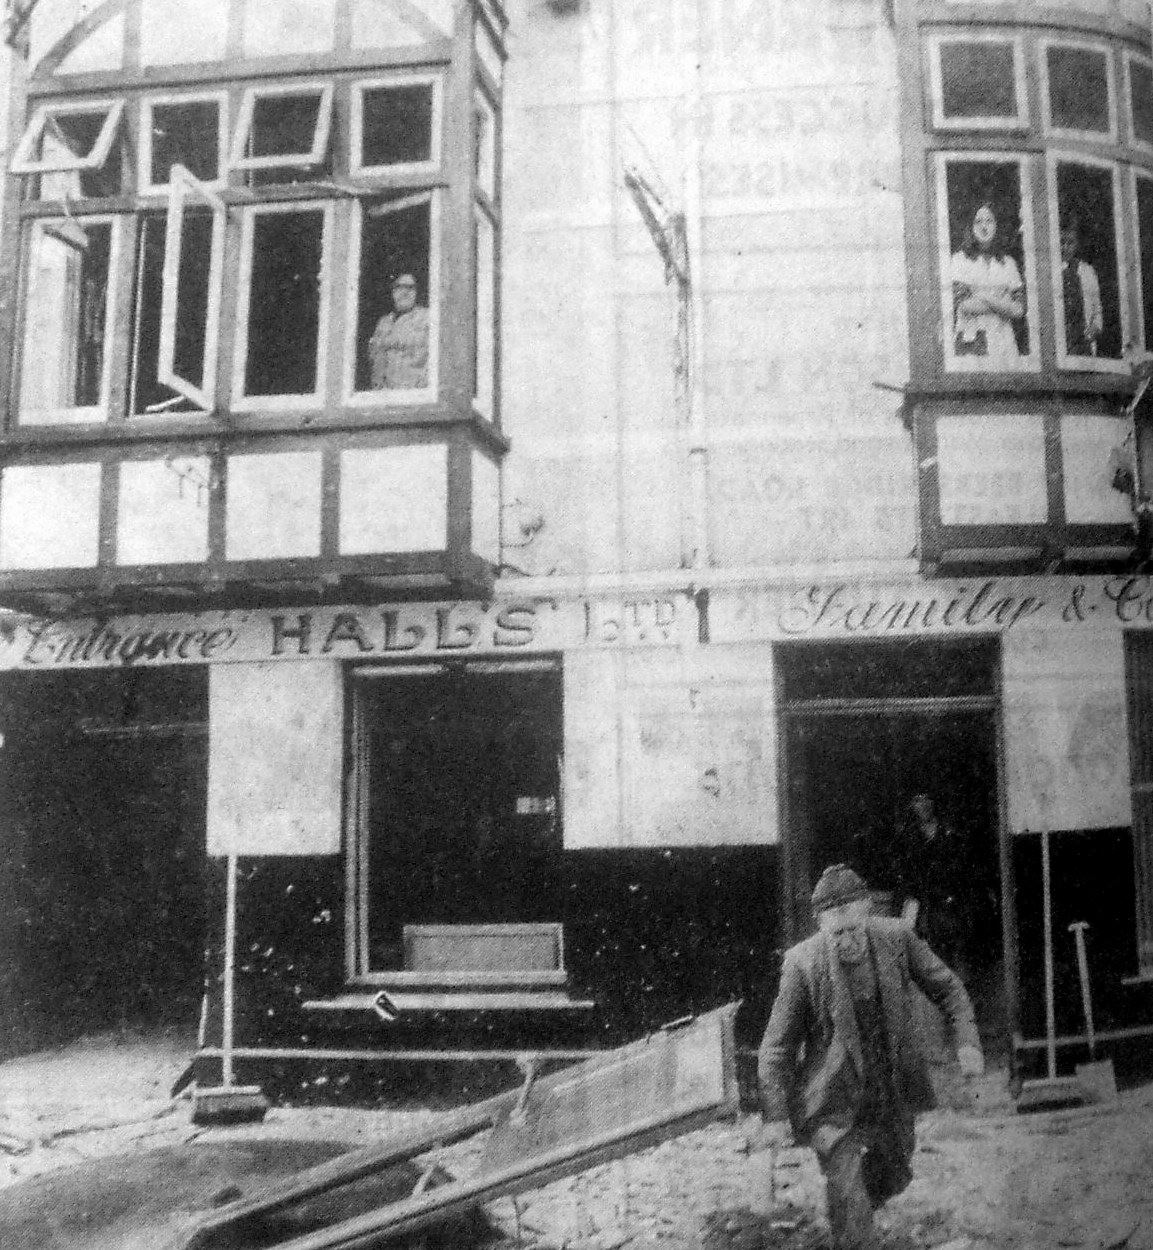 Exploded Outside Halls Hotel Or Another Time When My Brother, As A New  Journalist, Had To Interview The Grandmother Of Three Little Boys Murdered,